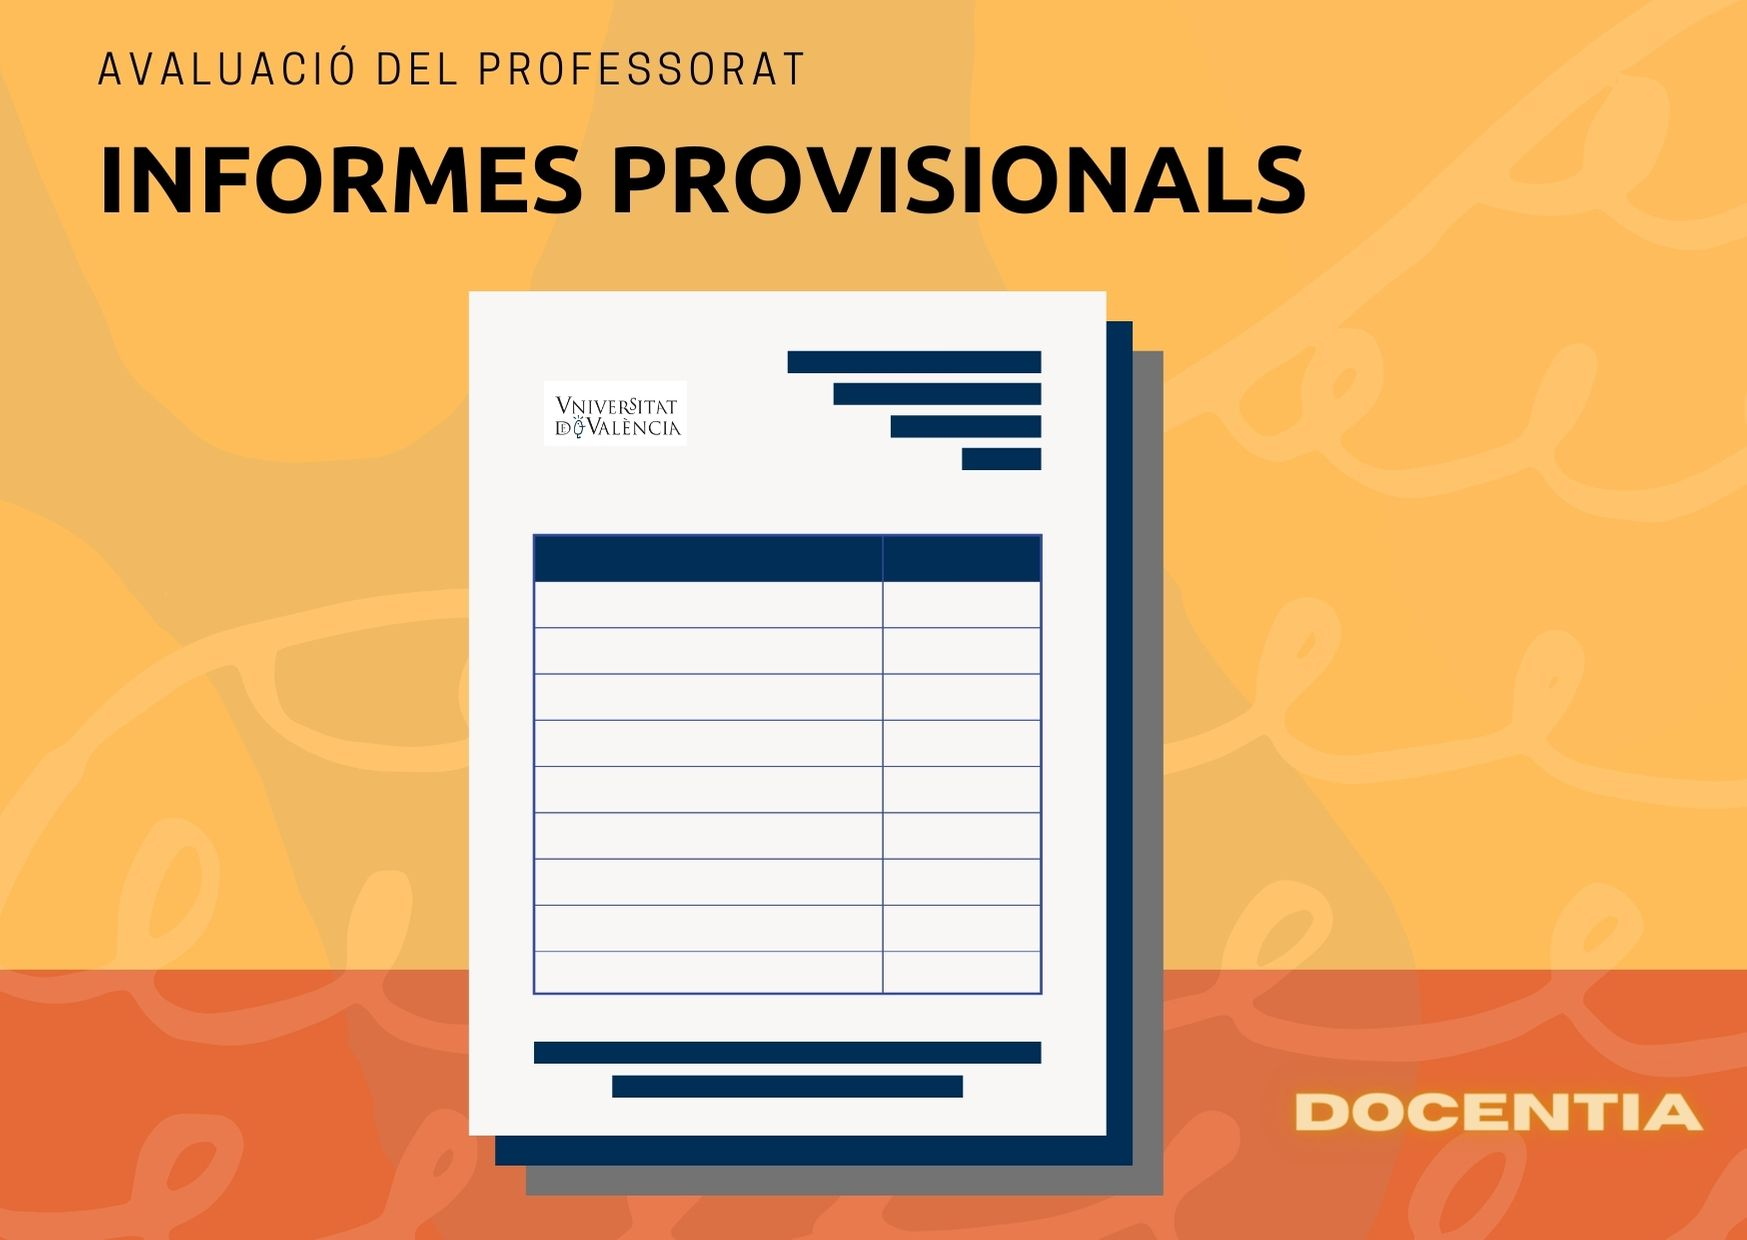 Informe provisional DOCENTIA